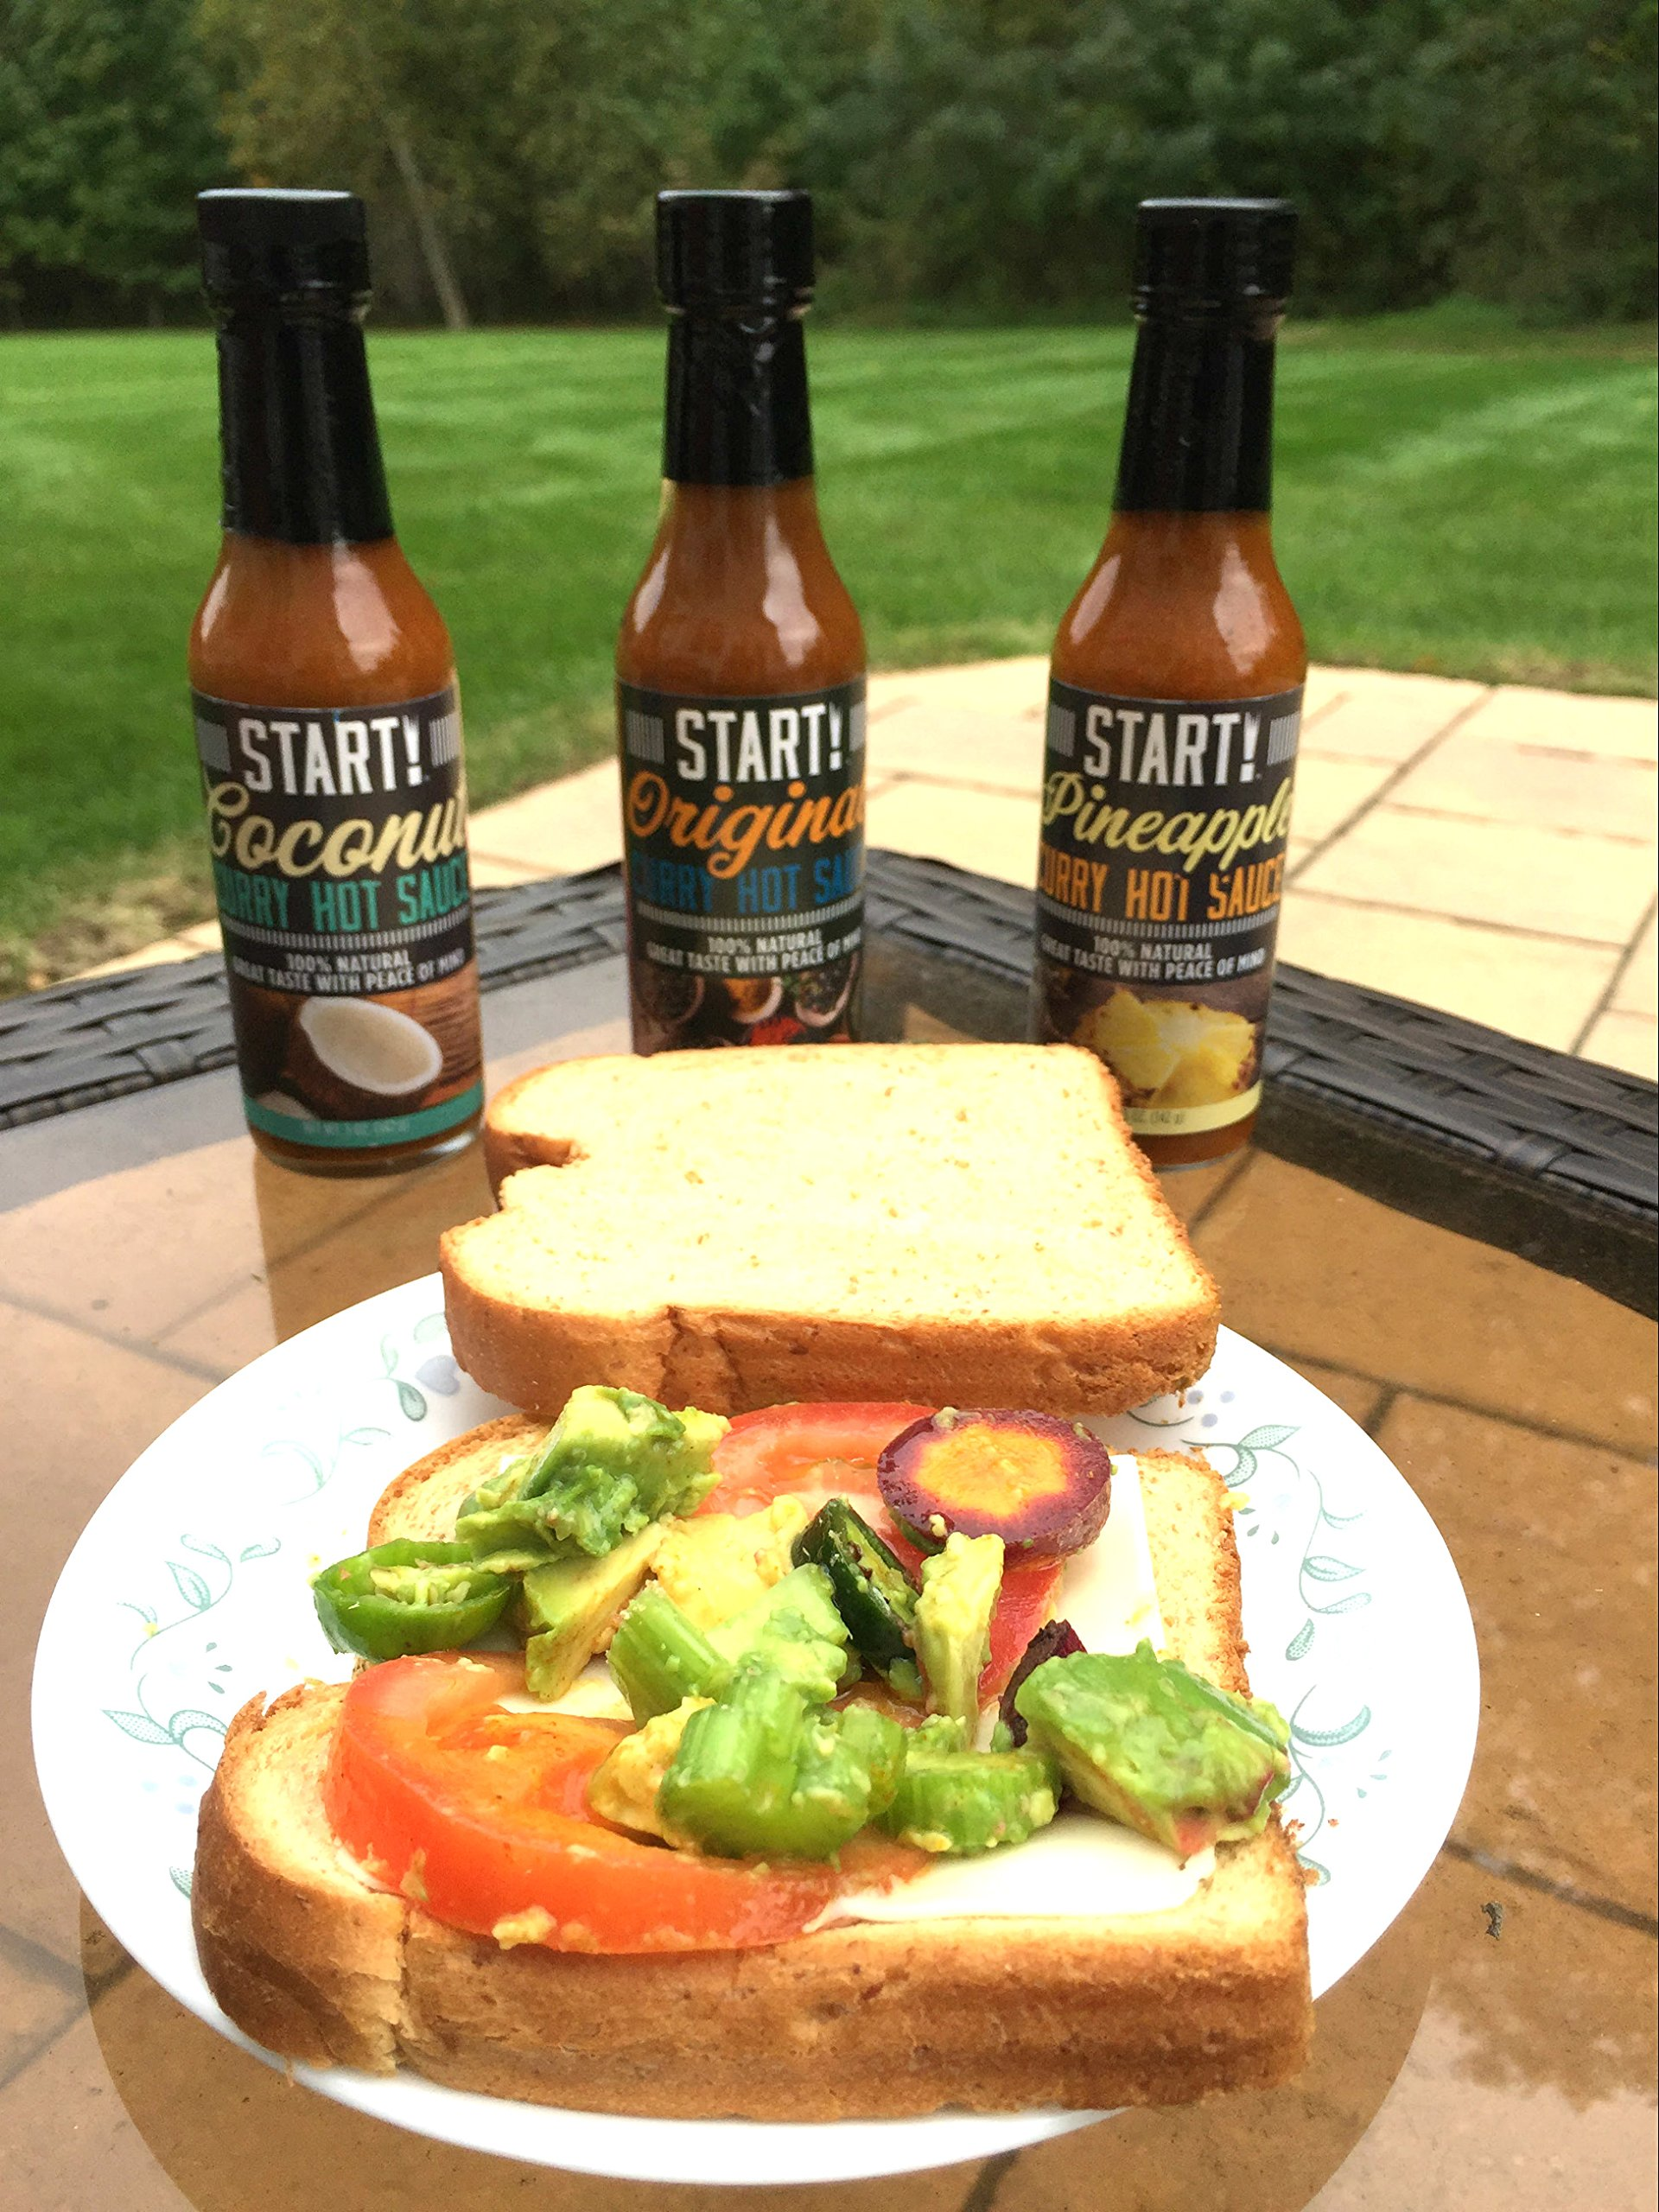 START! Curry Hot Sauce - Variety Sampler Party Pack - Original, Coconut, and Pineapple Flavors - Vegan + Gluten Free - Everyday Gourmet Light Spice (12 pack) by Start (Image #4)